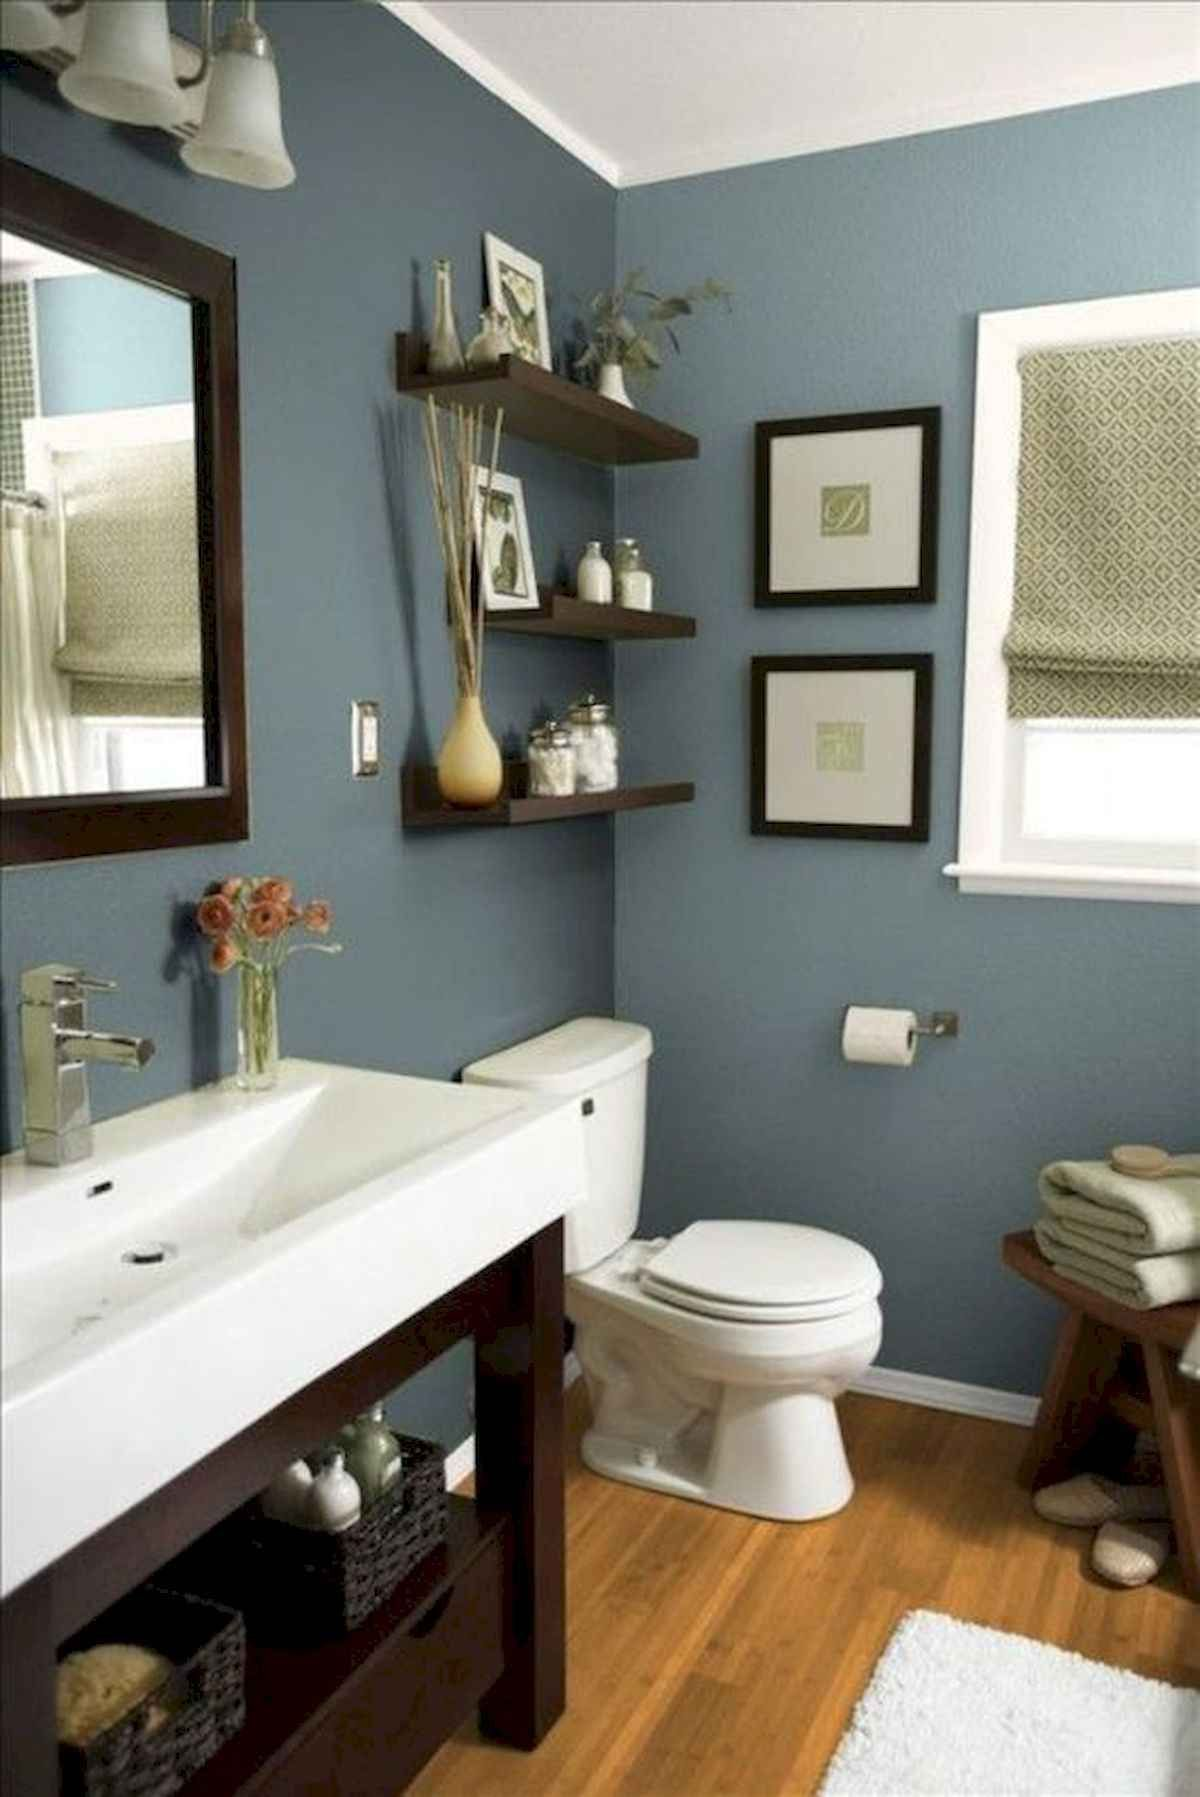 55 Fresh Small Master Bathroom Remodel Ideas And Design 45 Livingmarch Com Bathroom De In 2020 Popular Bathroom Colors Small Bathroom Paint Small Bathroom Remodel